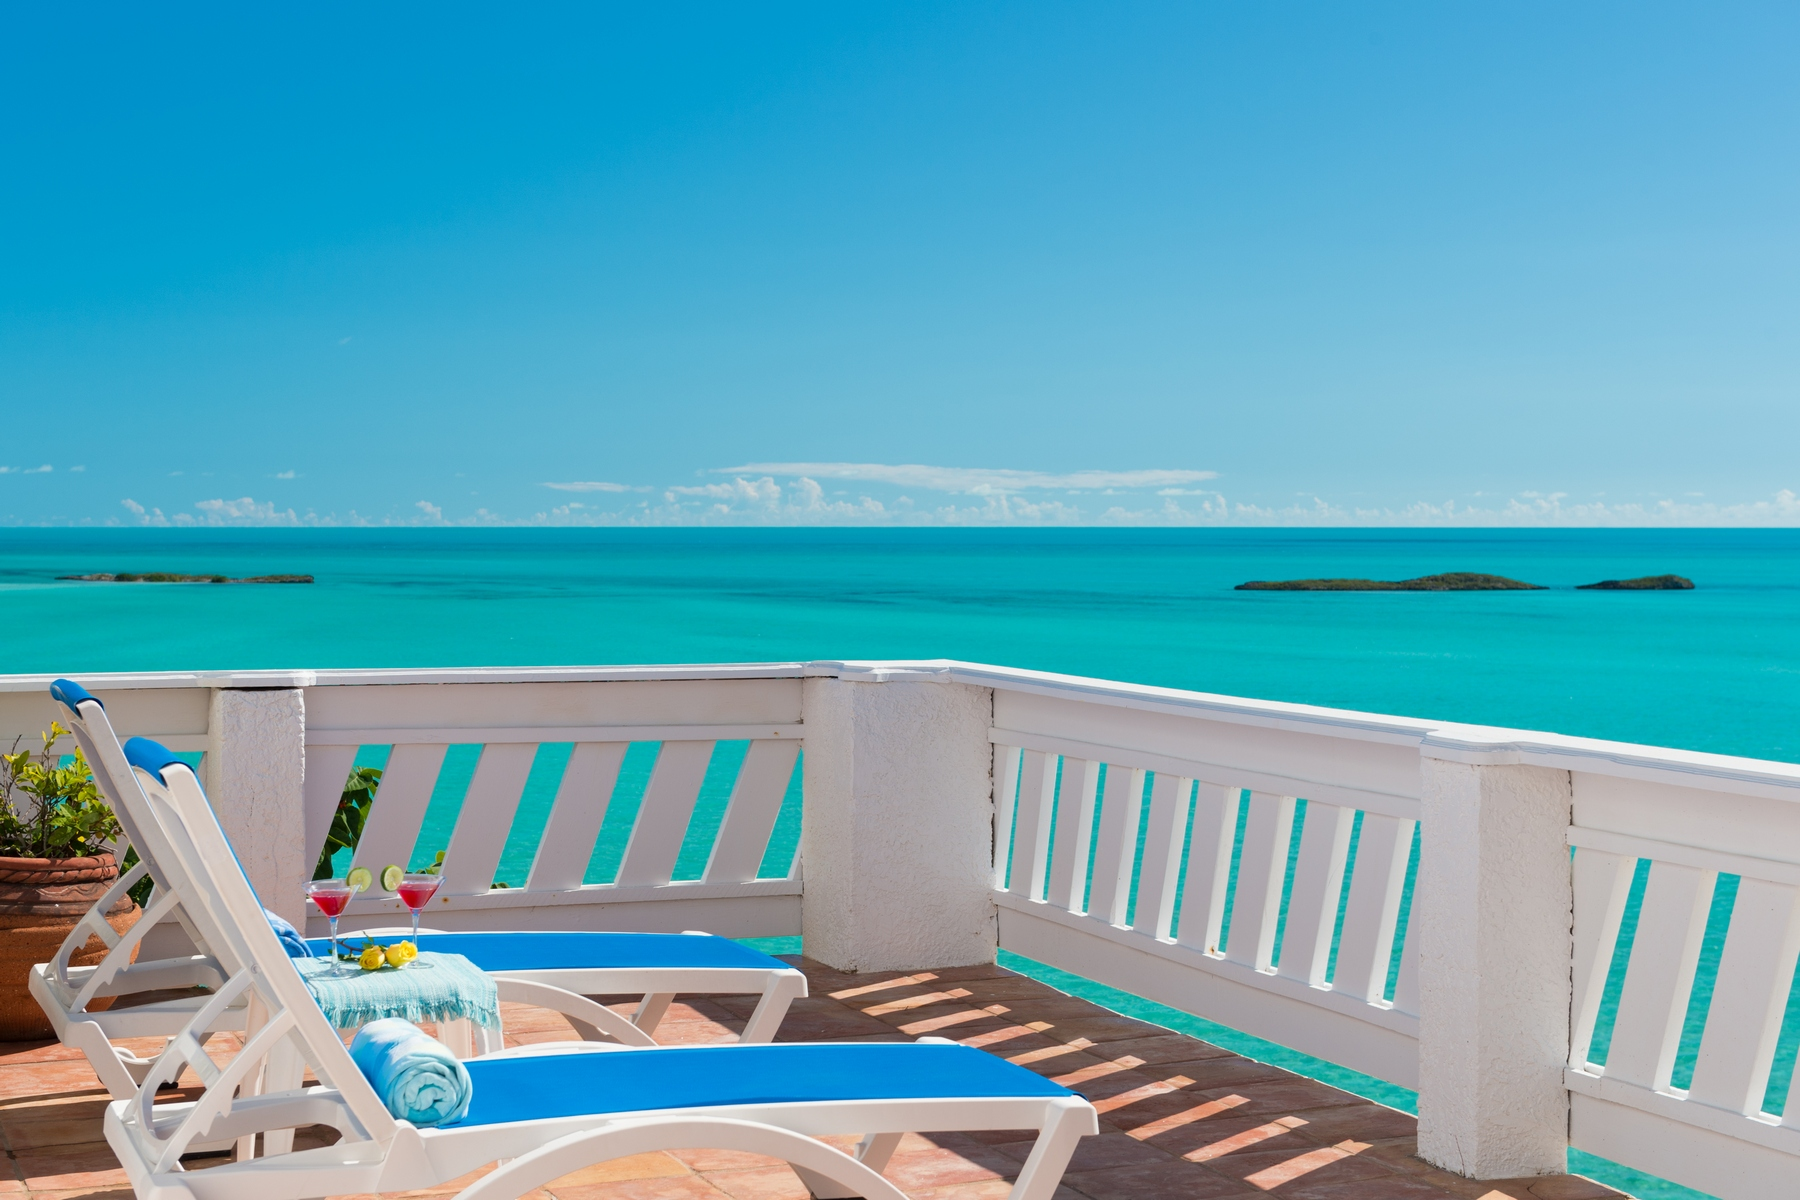 Single Family Home for Sale at Best View Villa Oceanfront Turtle Tail, TCI Turks And Caicos Islands